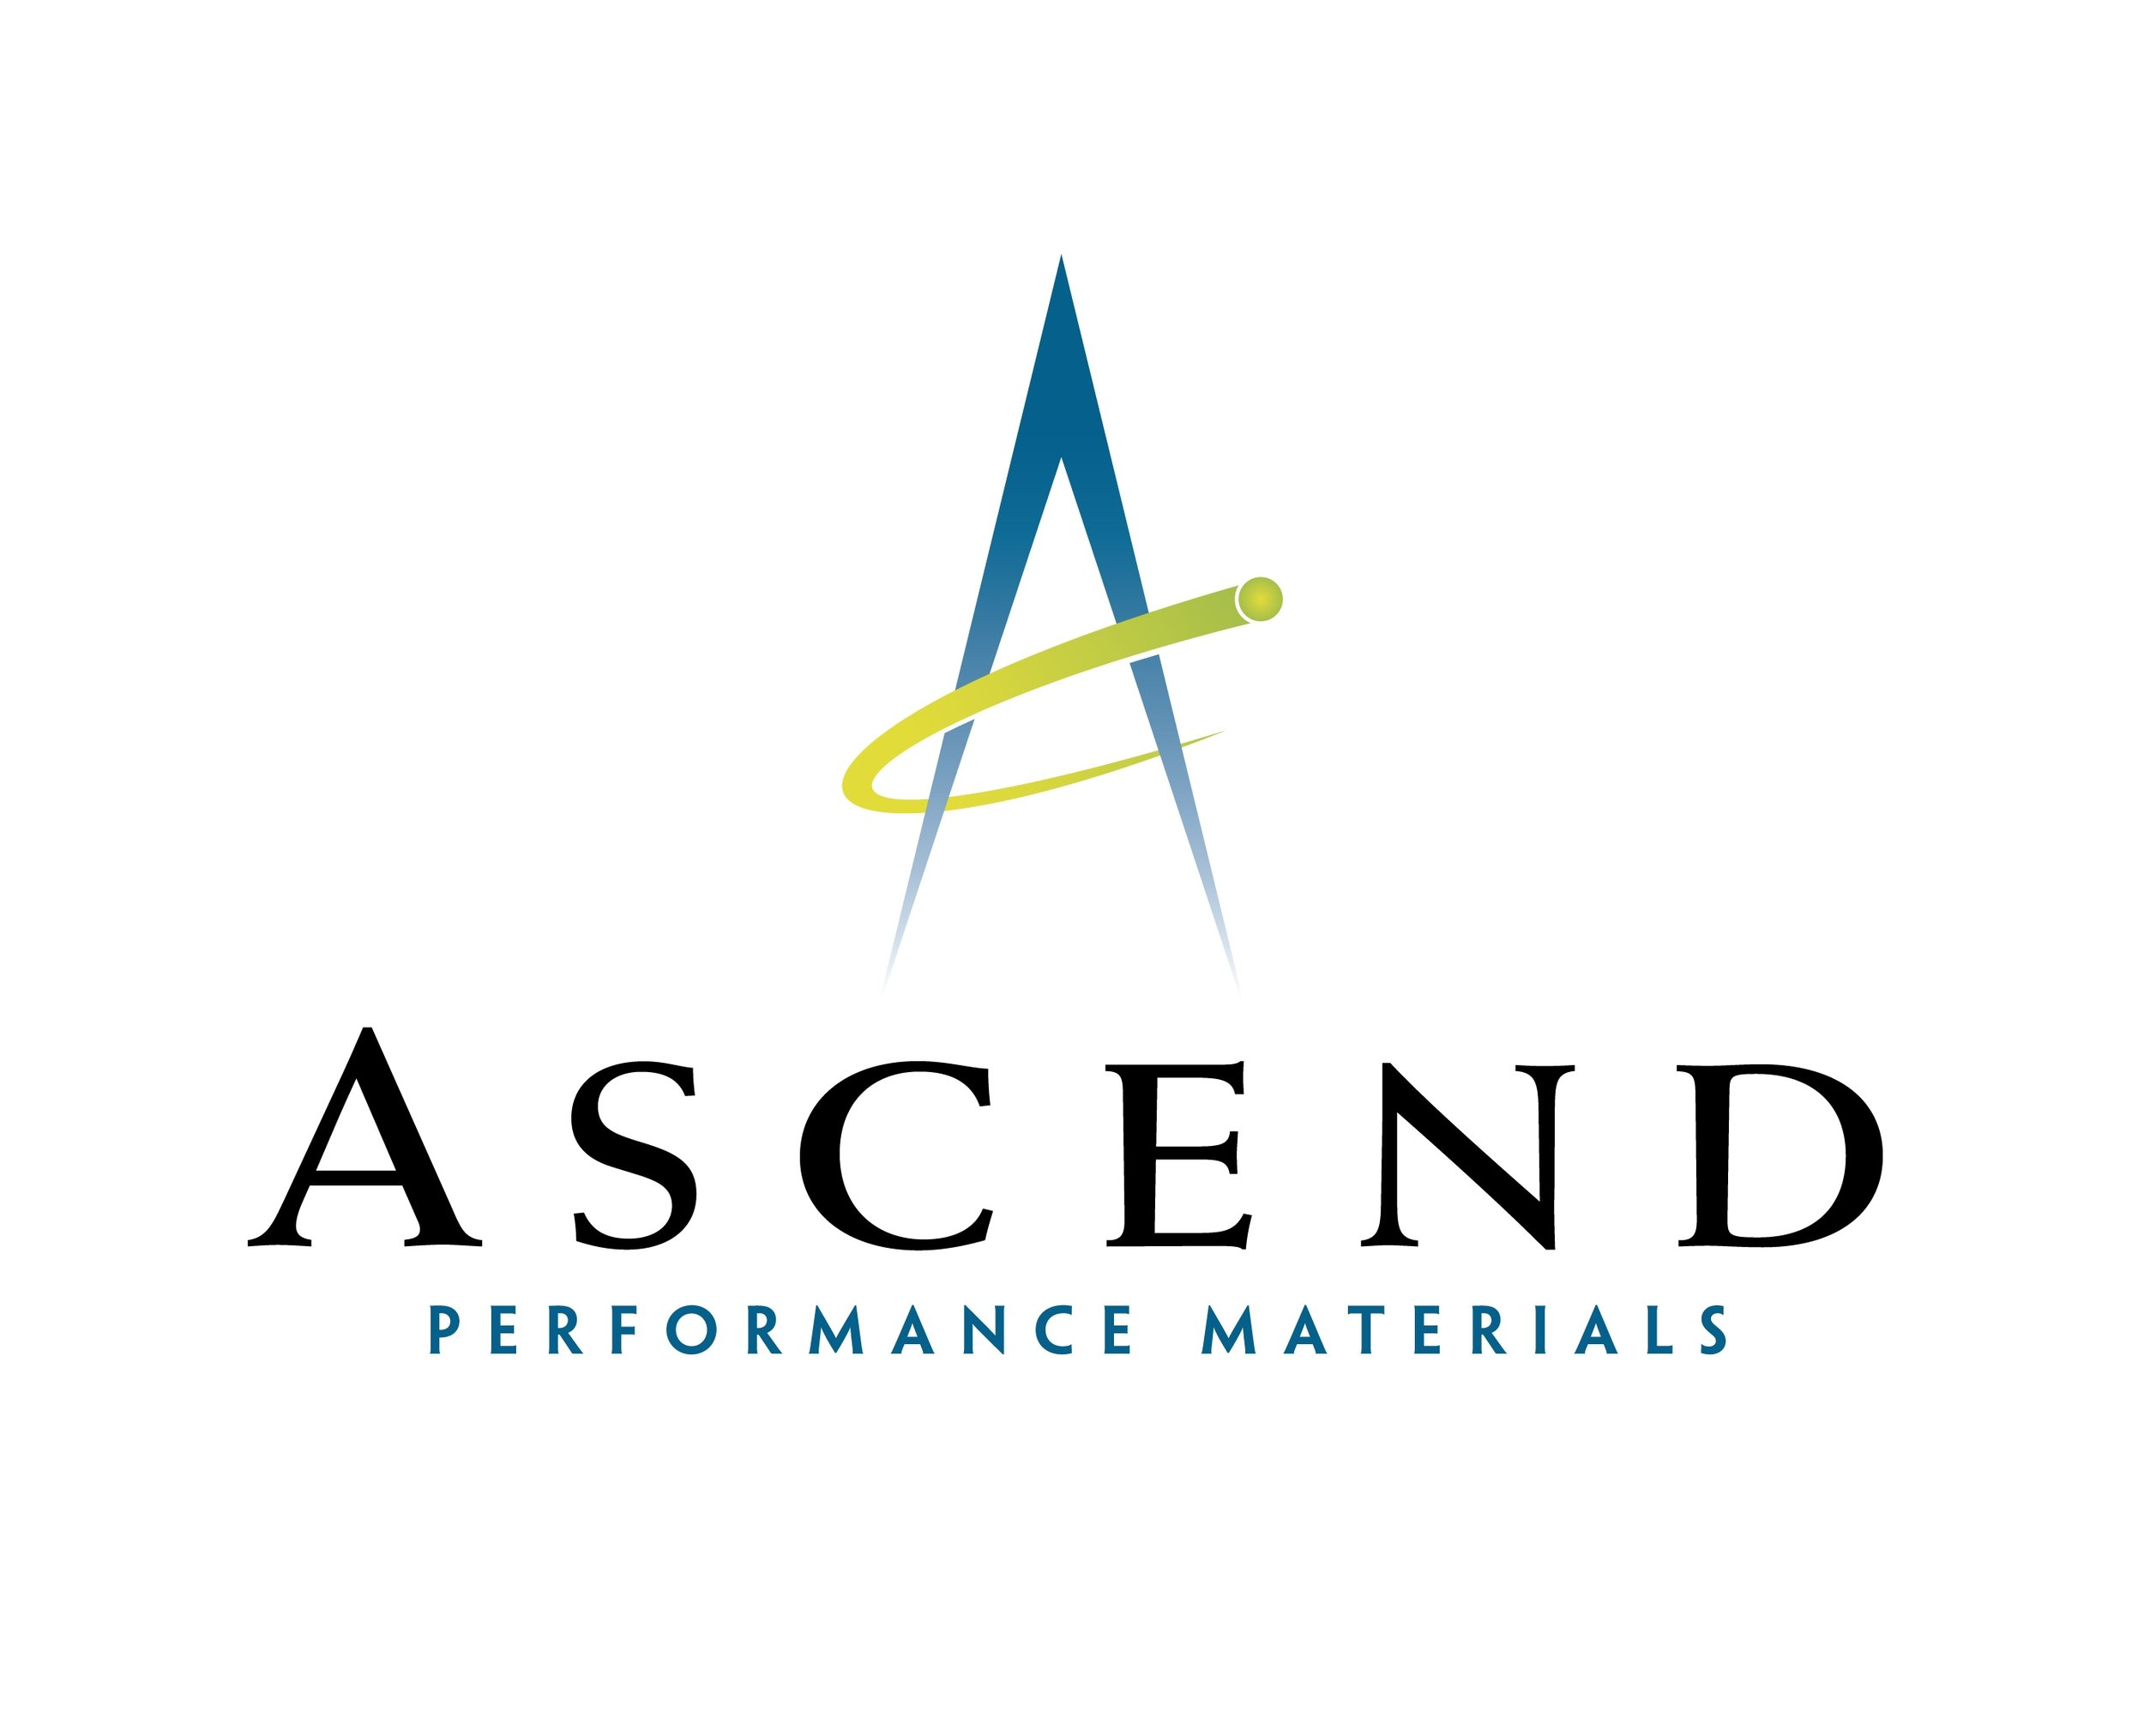 Copy of Ascend Performance Materials